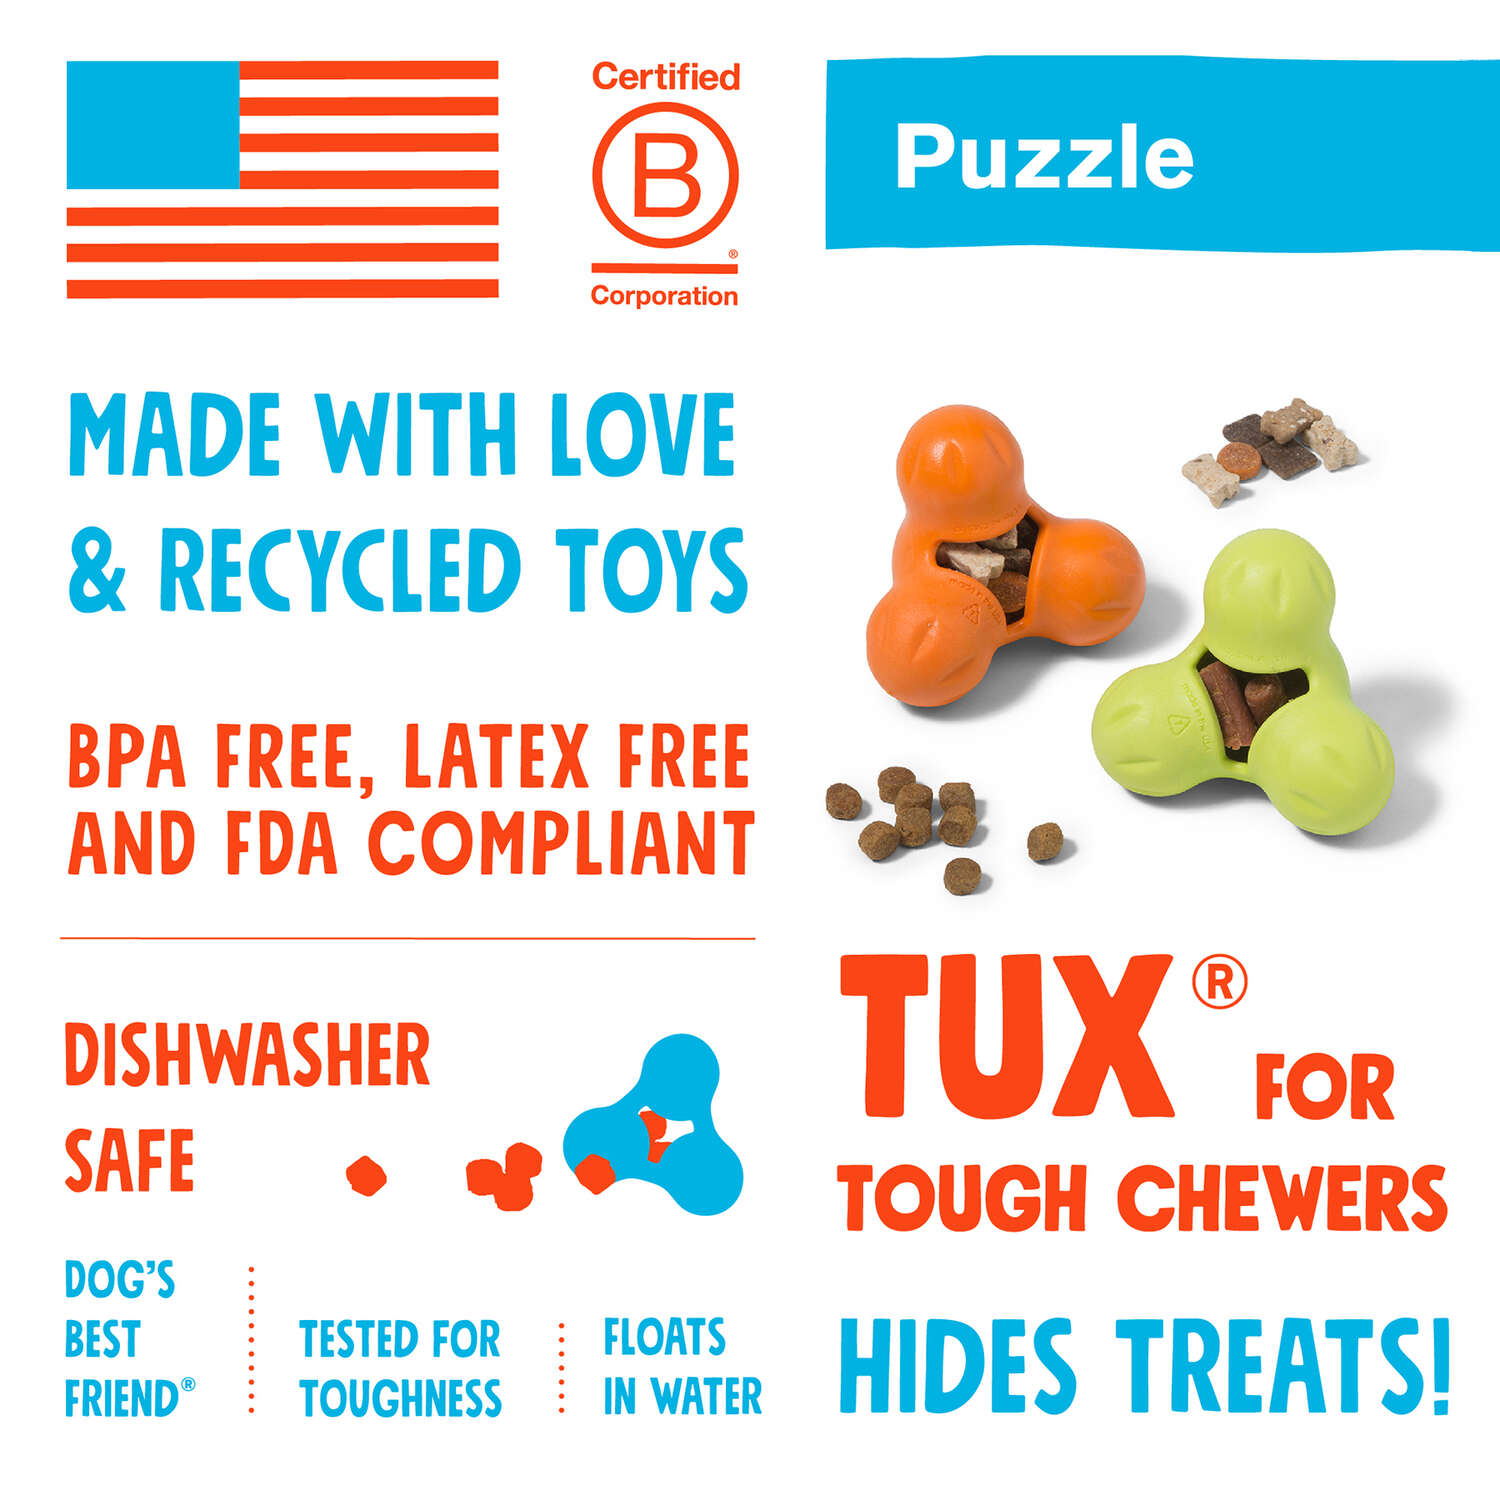 West Paw  Zogoflex  Orange  Tux Treat Toy  Synthetic Rubber  Dog Treat Toy/Dispenser  Small